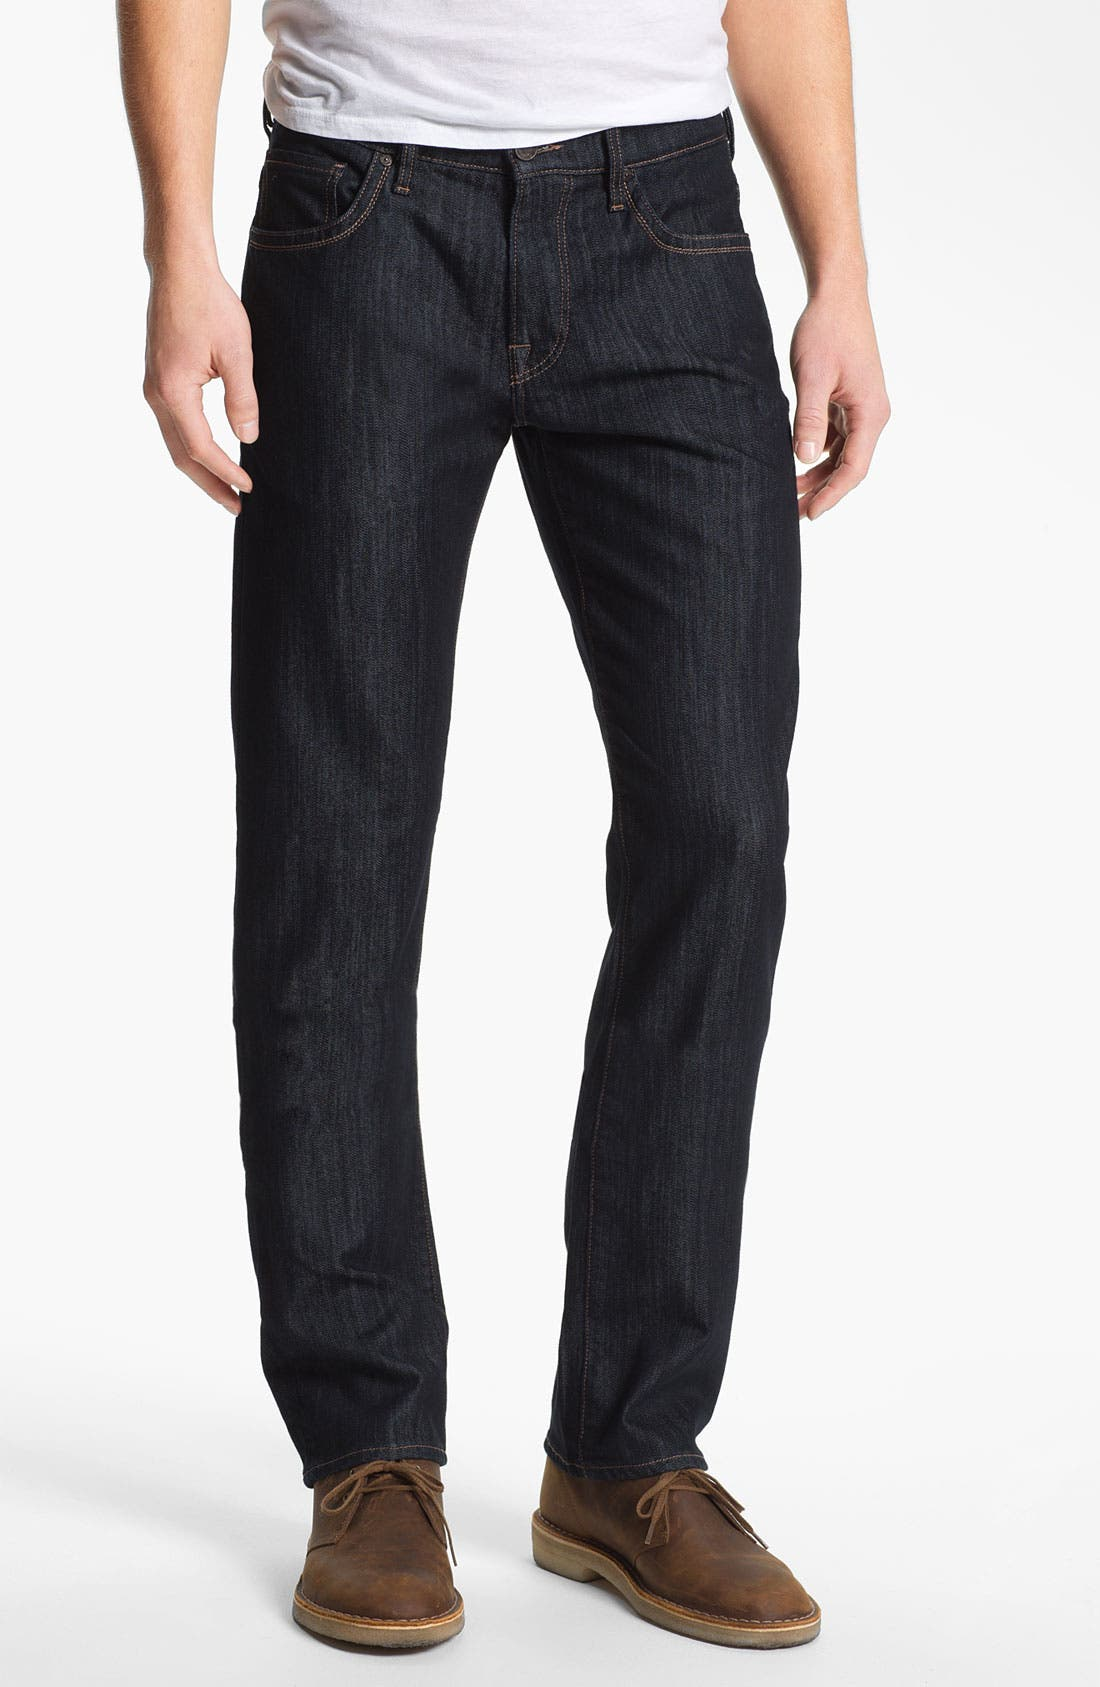 'Courage' Straight Leg Jeans,                         Main,                         color, 425